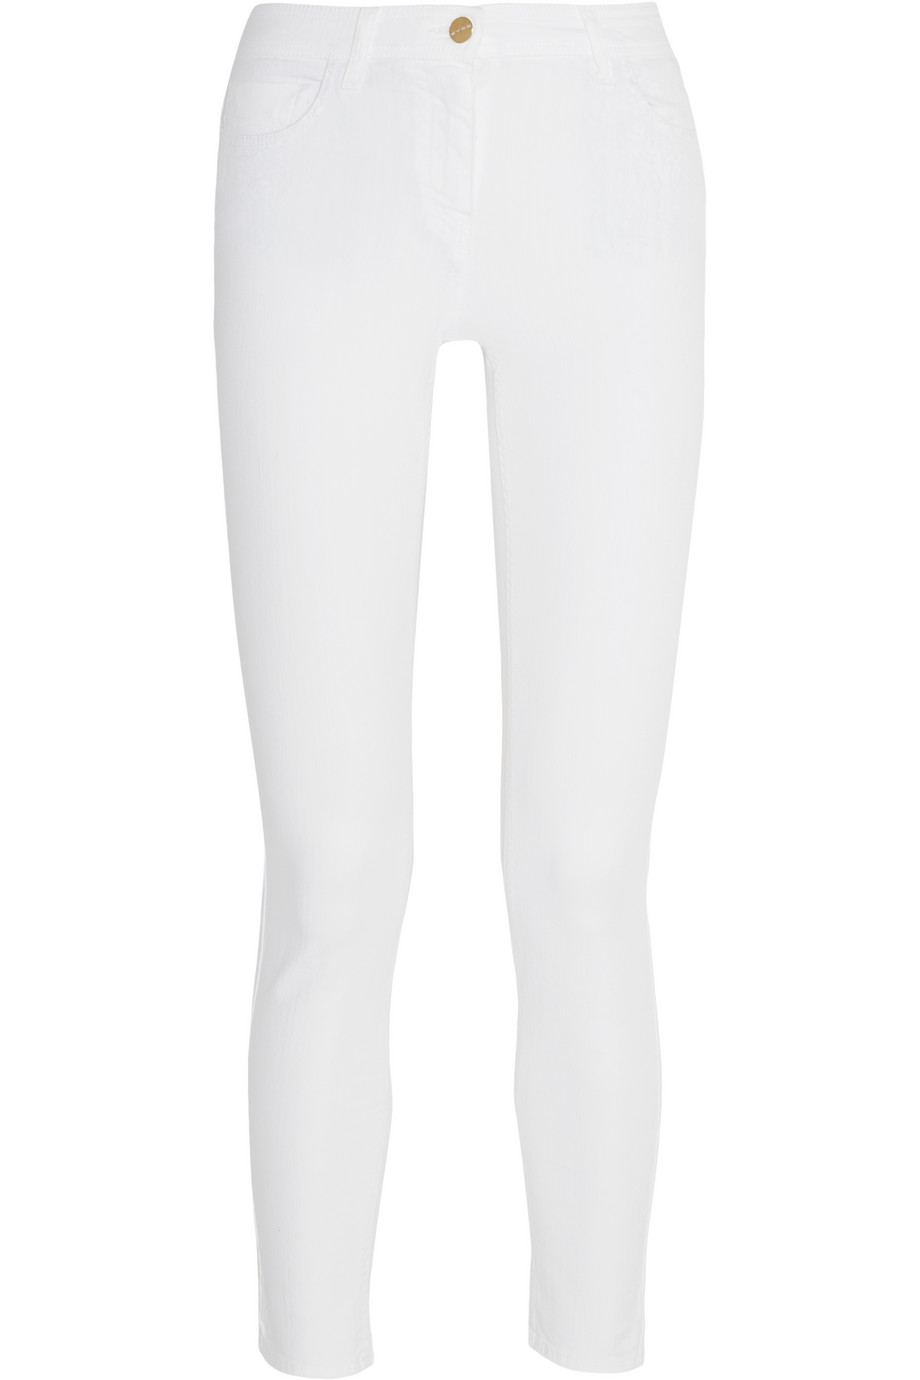 Etro Low-Rise Skinny Jeans, White, Women's, Size: 27